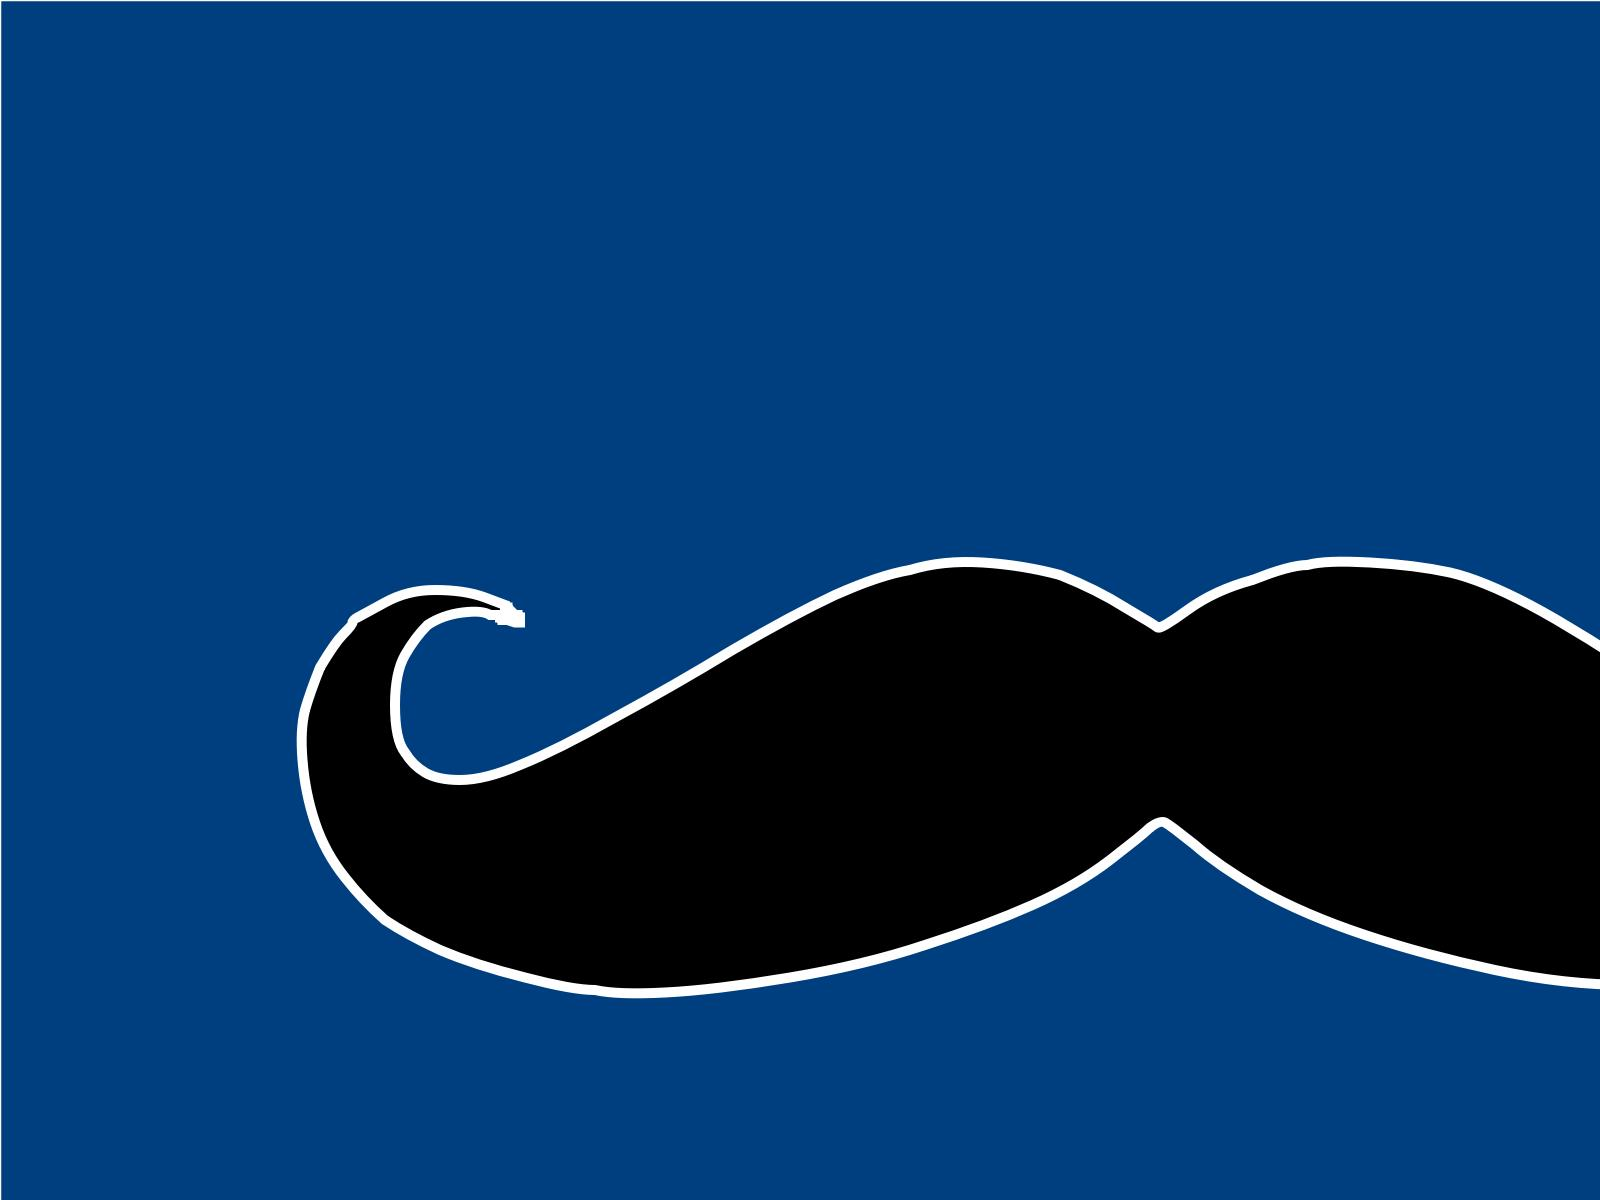 Blue Mustache Clip art, Icon and SVG.